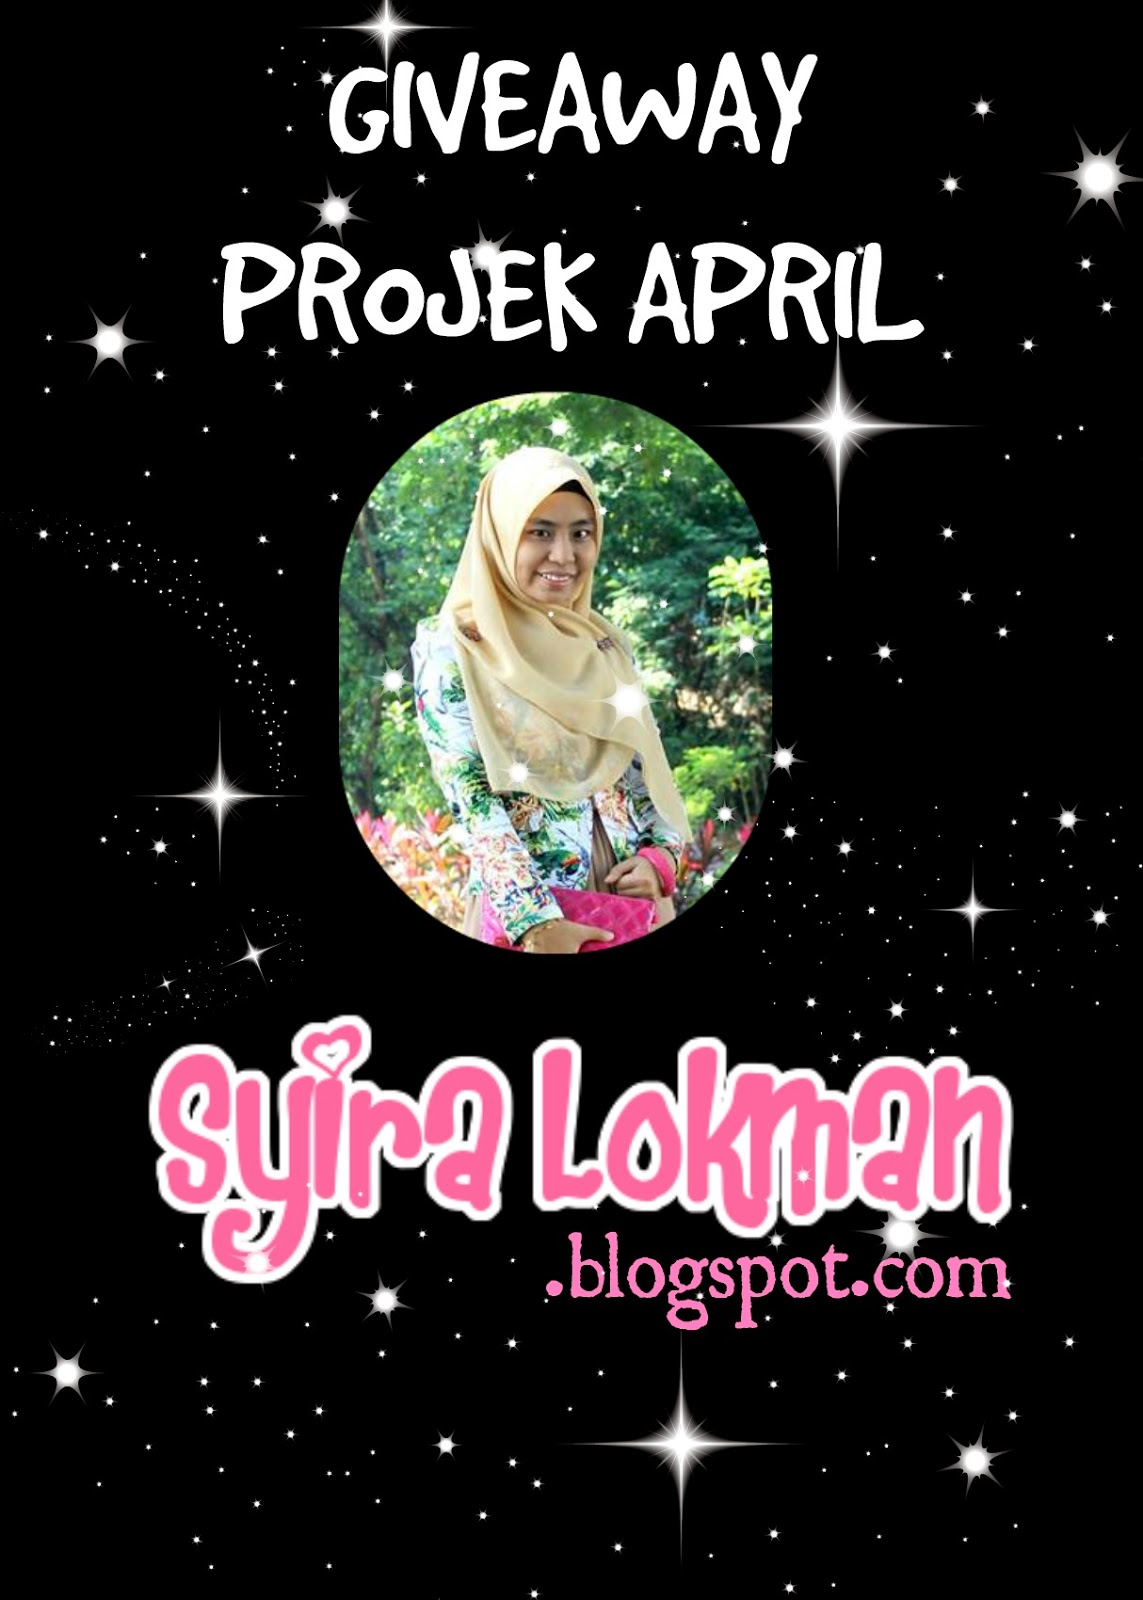 Giveaway PROJEK APRIL by Syira Lokman